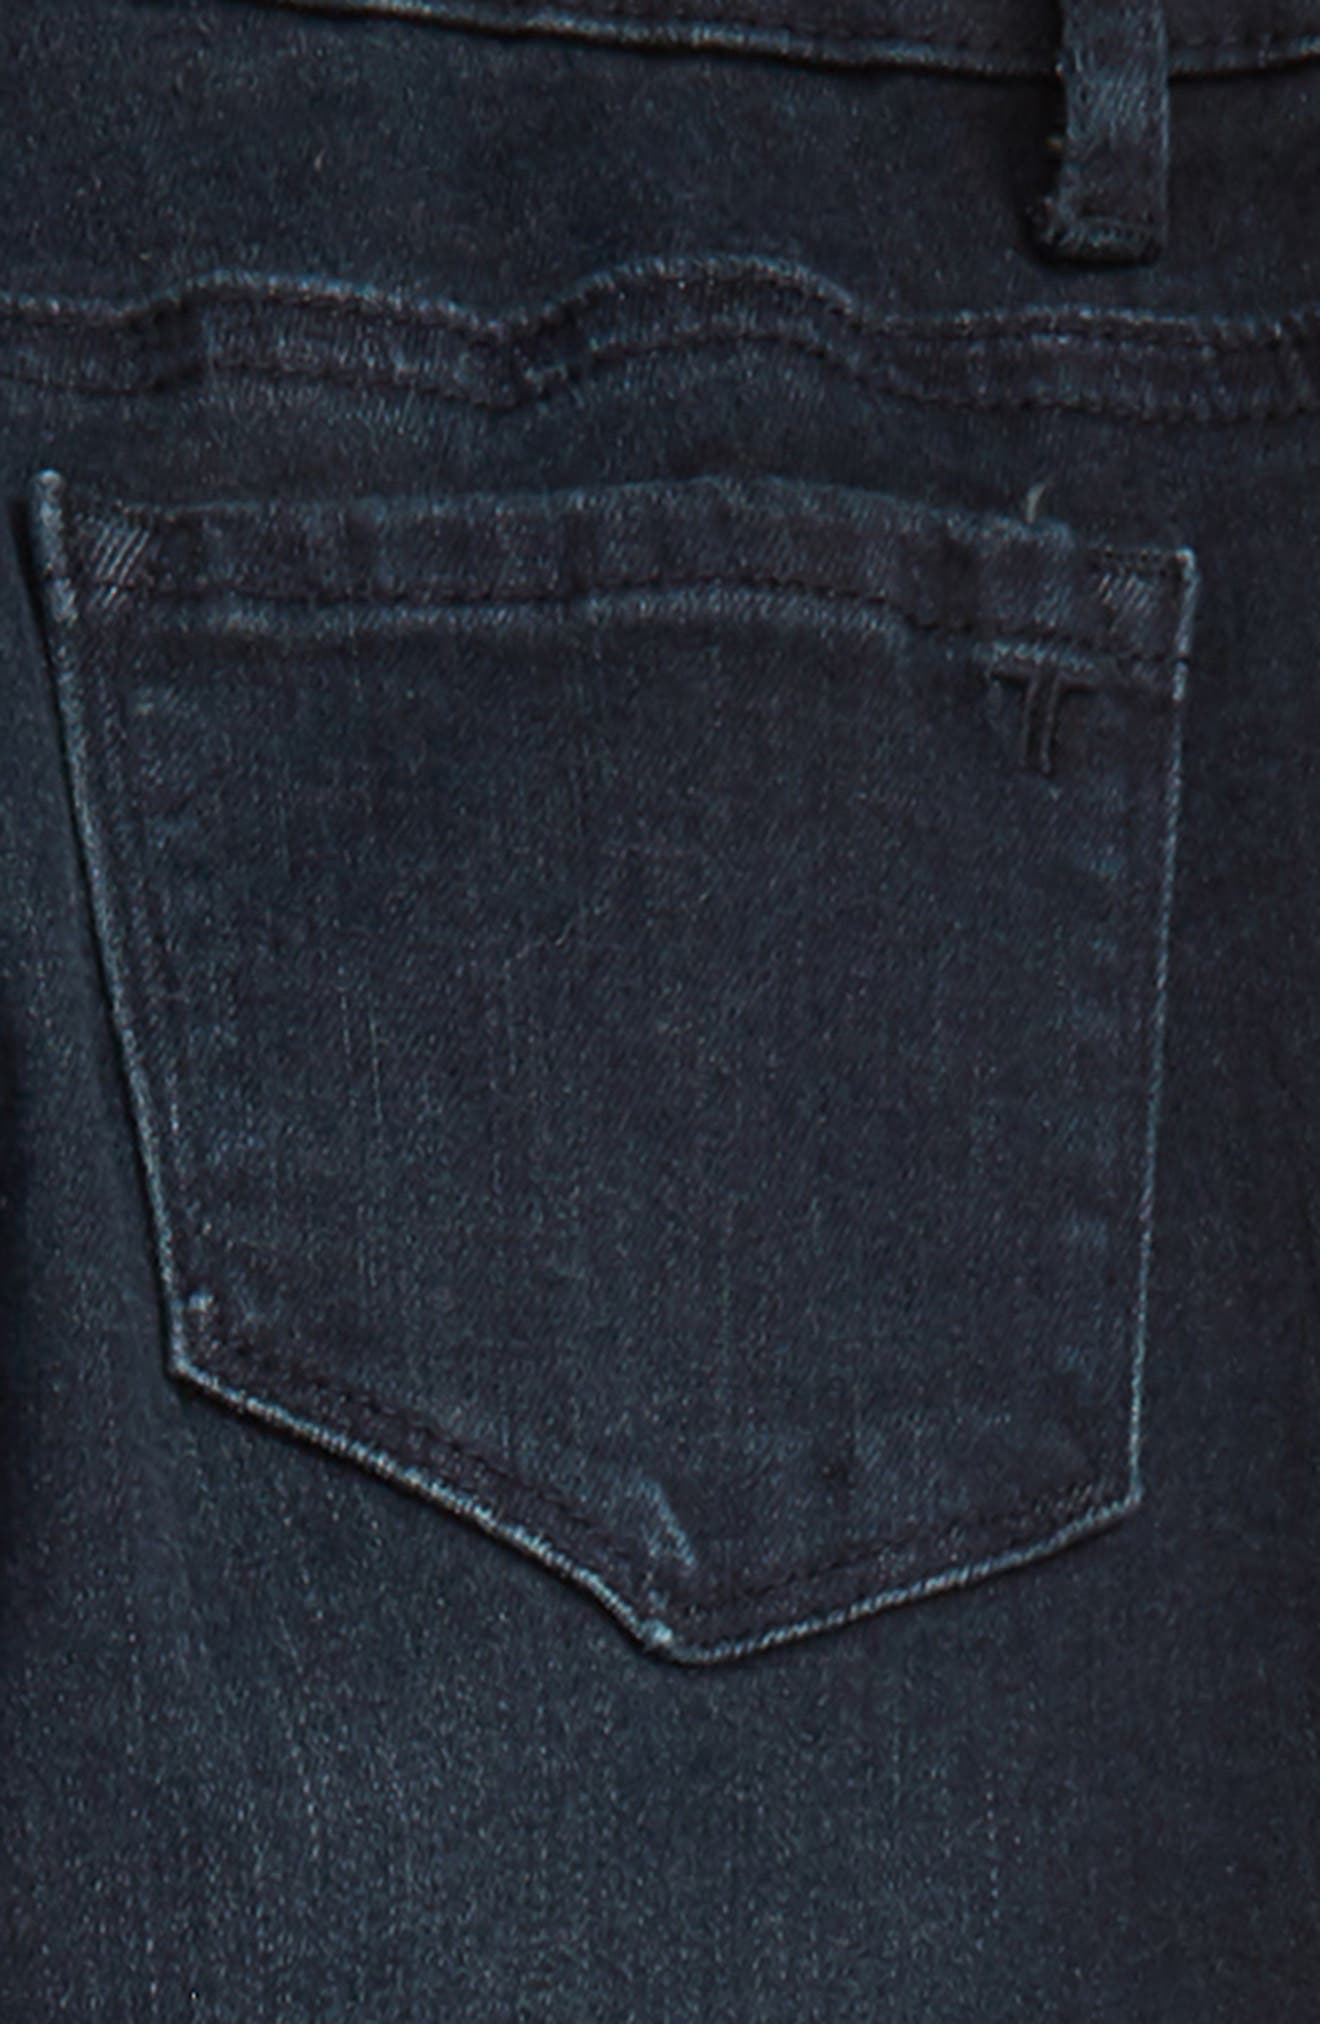 Distressed Skinny Jeans,                             Alternate thumbnail 3, color,                             INDIGO